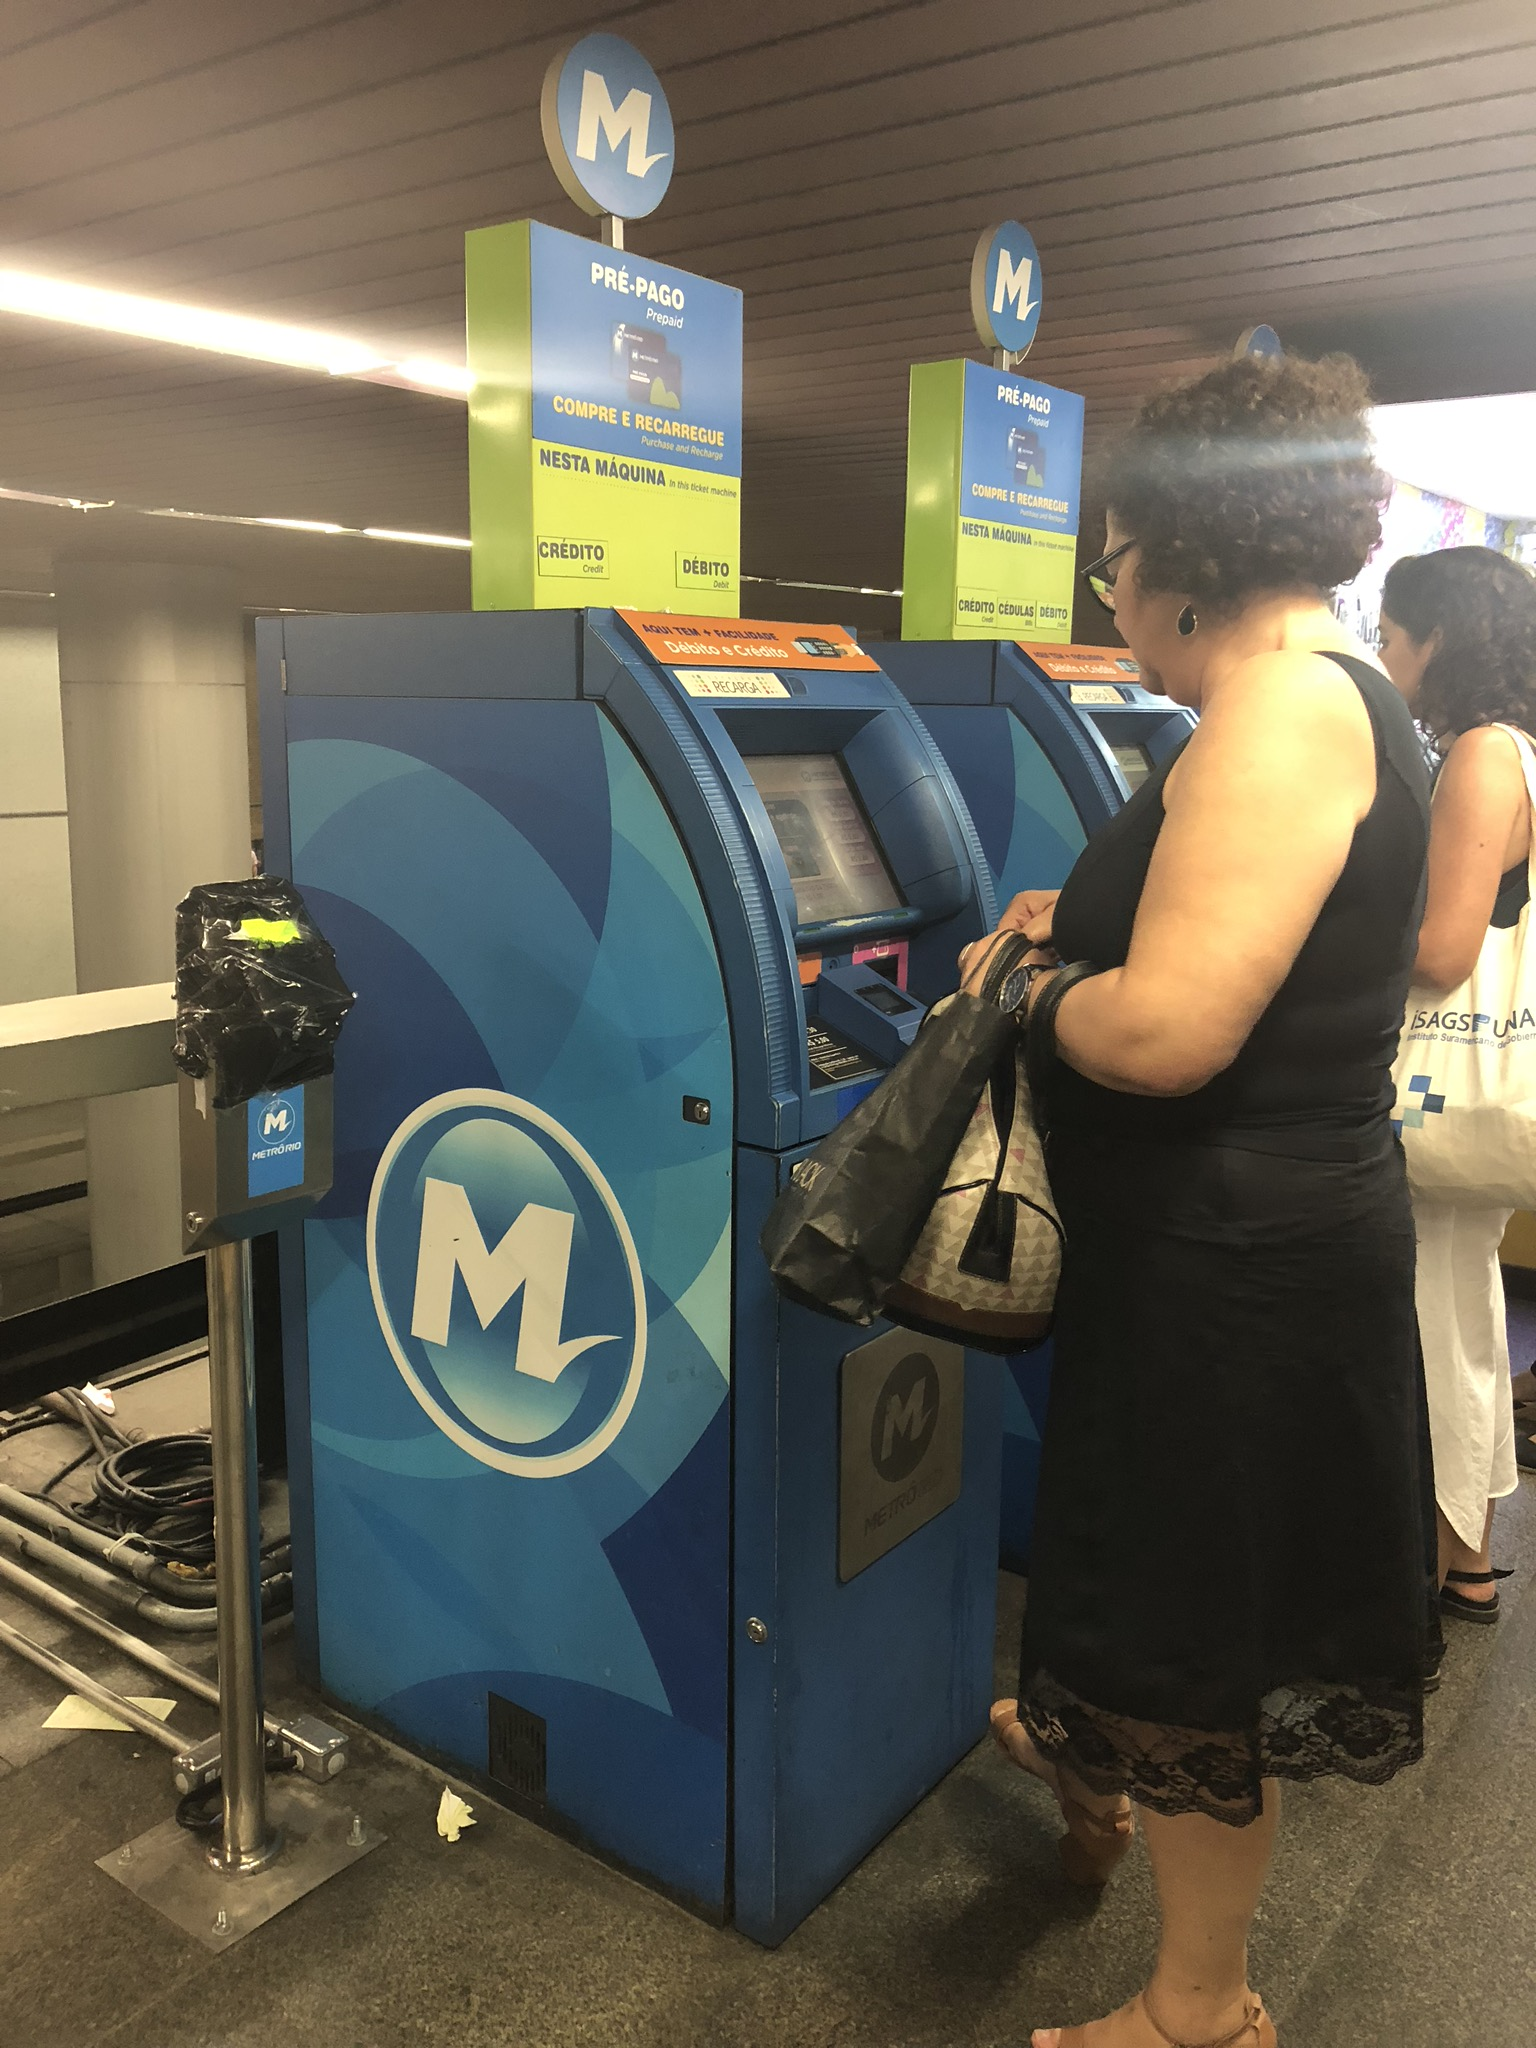 Machines to buy a card